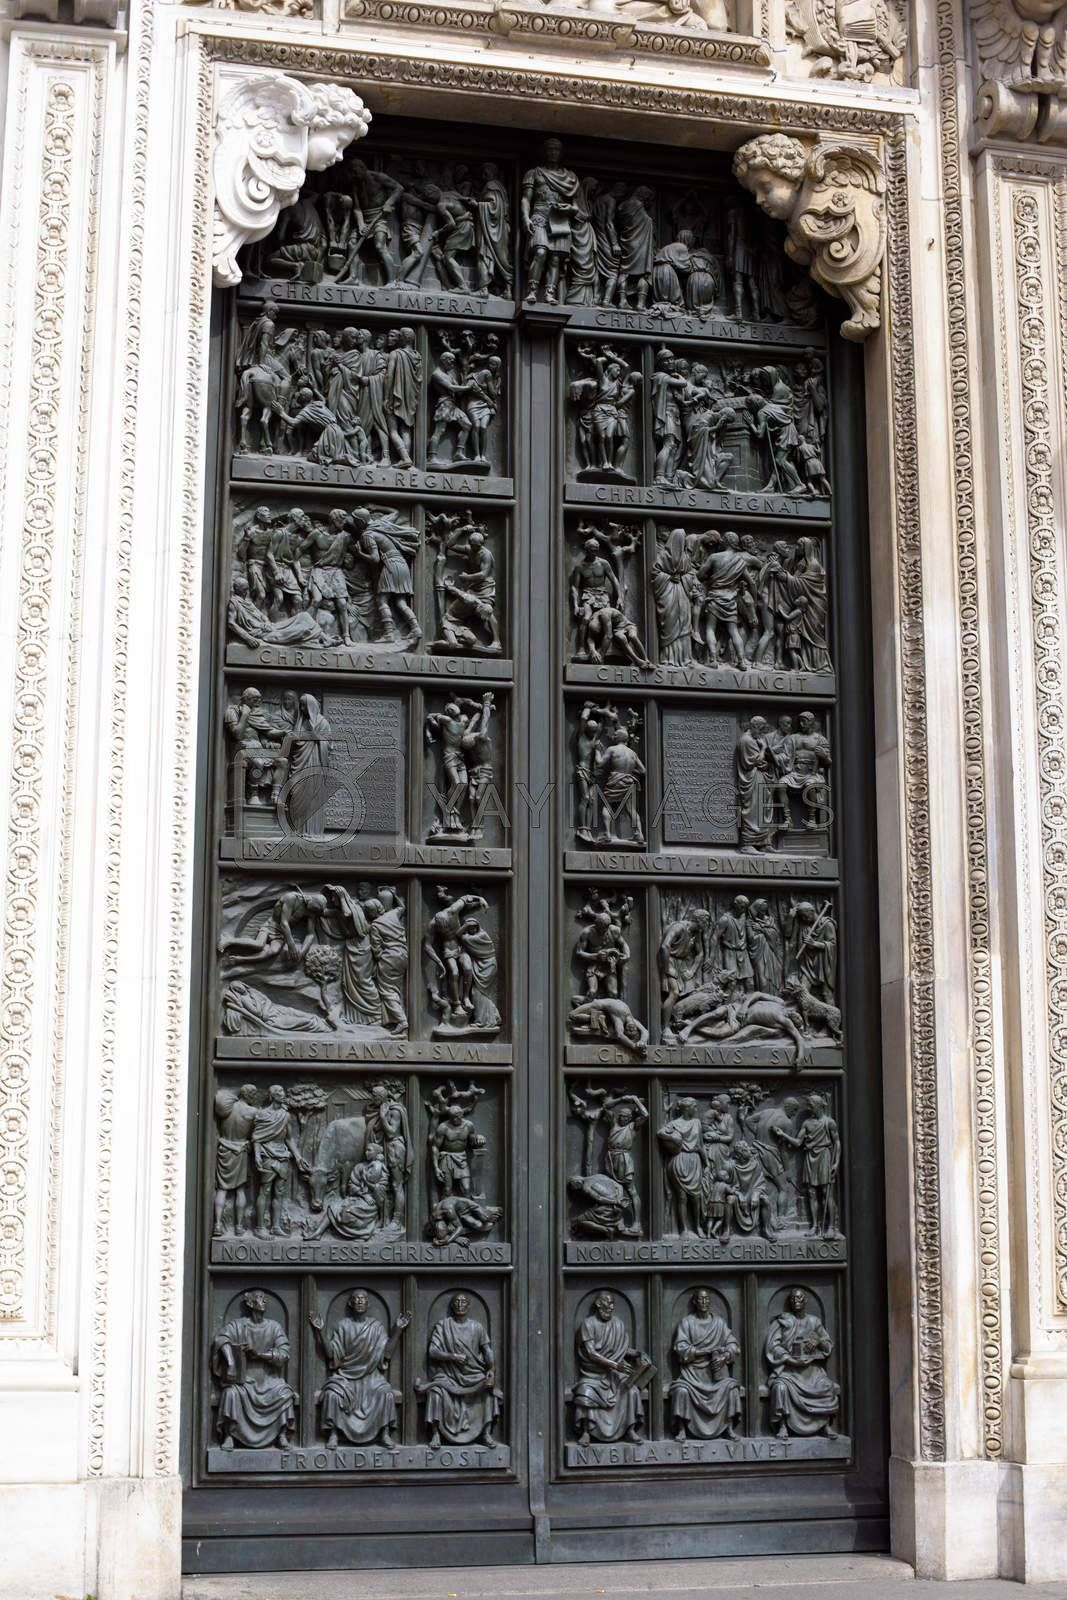 A famous gothic Milan cathedral door in Italy